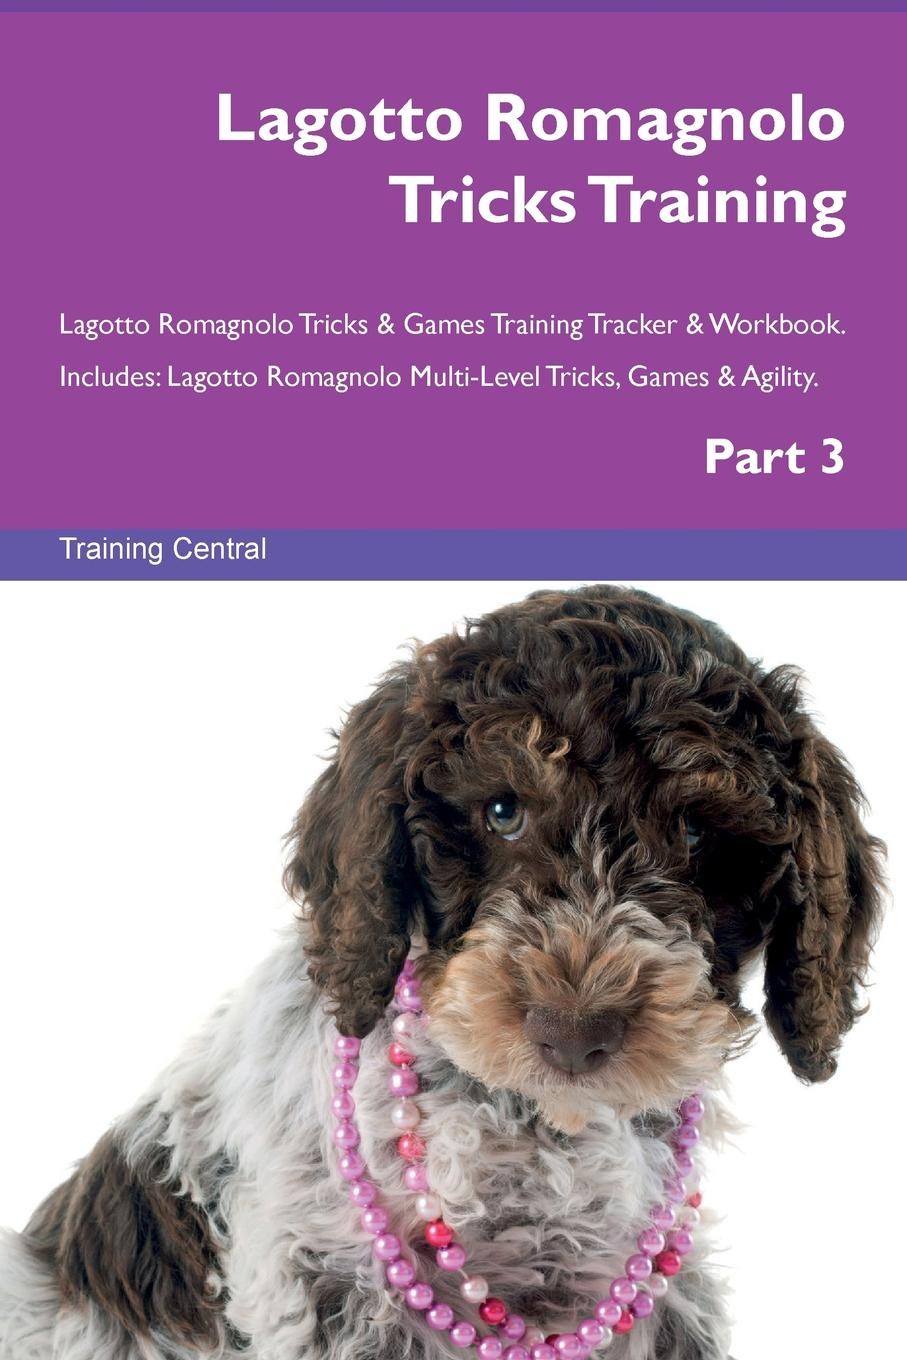 Training Central Lagotto Romagnolo Tricks Training Lagotto Romagnolo Tricks . Games Training Tracker . Workbook. Includes. Lagotto Romagnolo Multi-Level Tricks, Games . Agility. Part 3 this book loves you